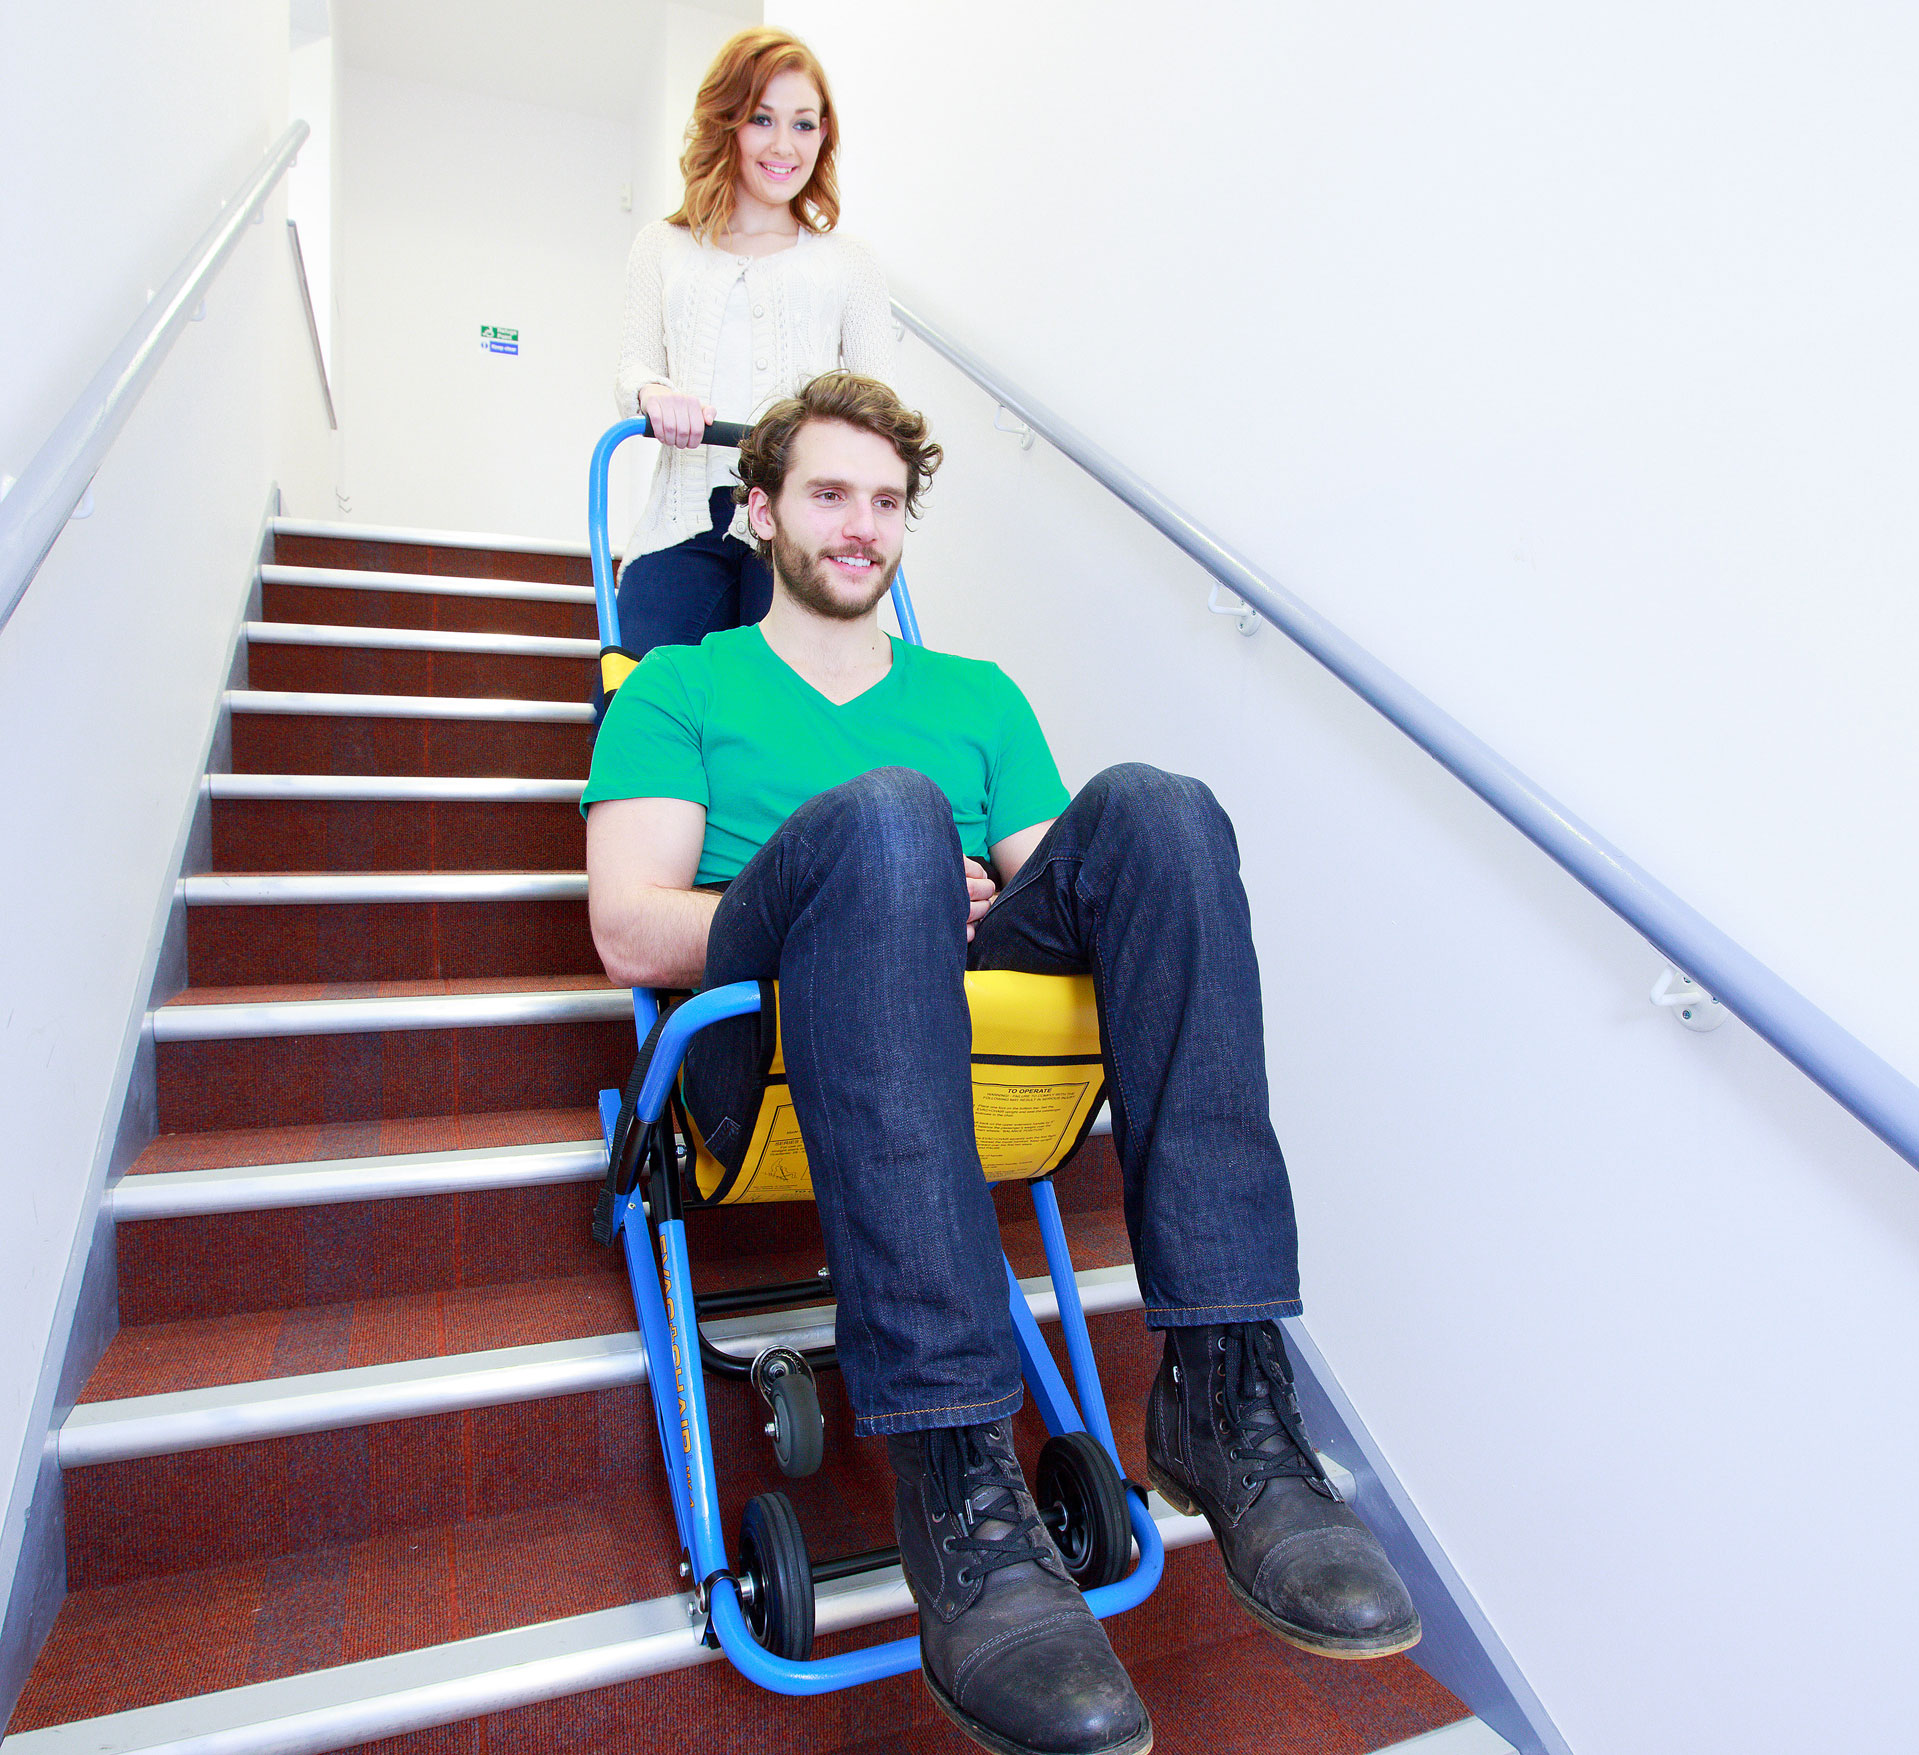 Evacuation chair in use